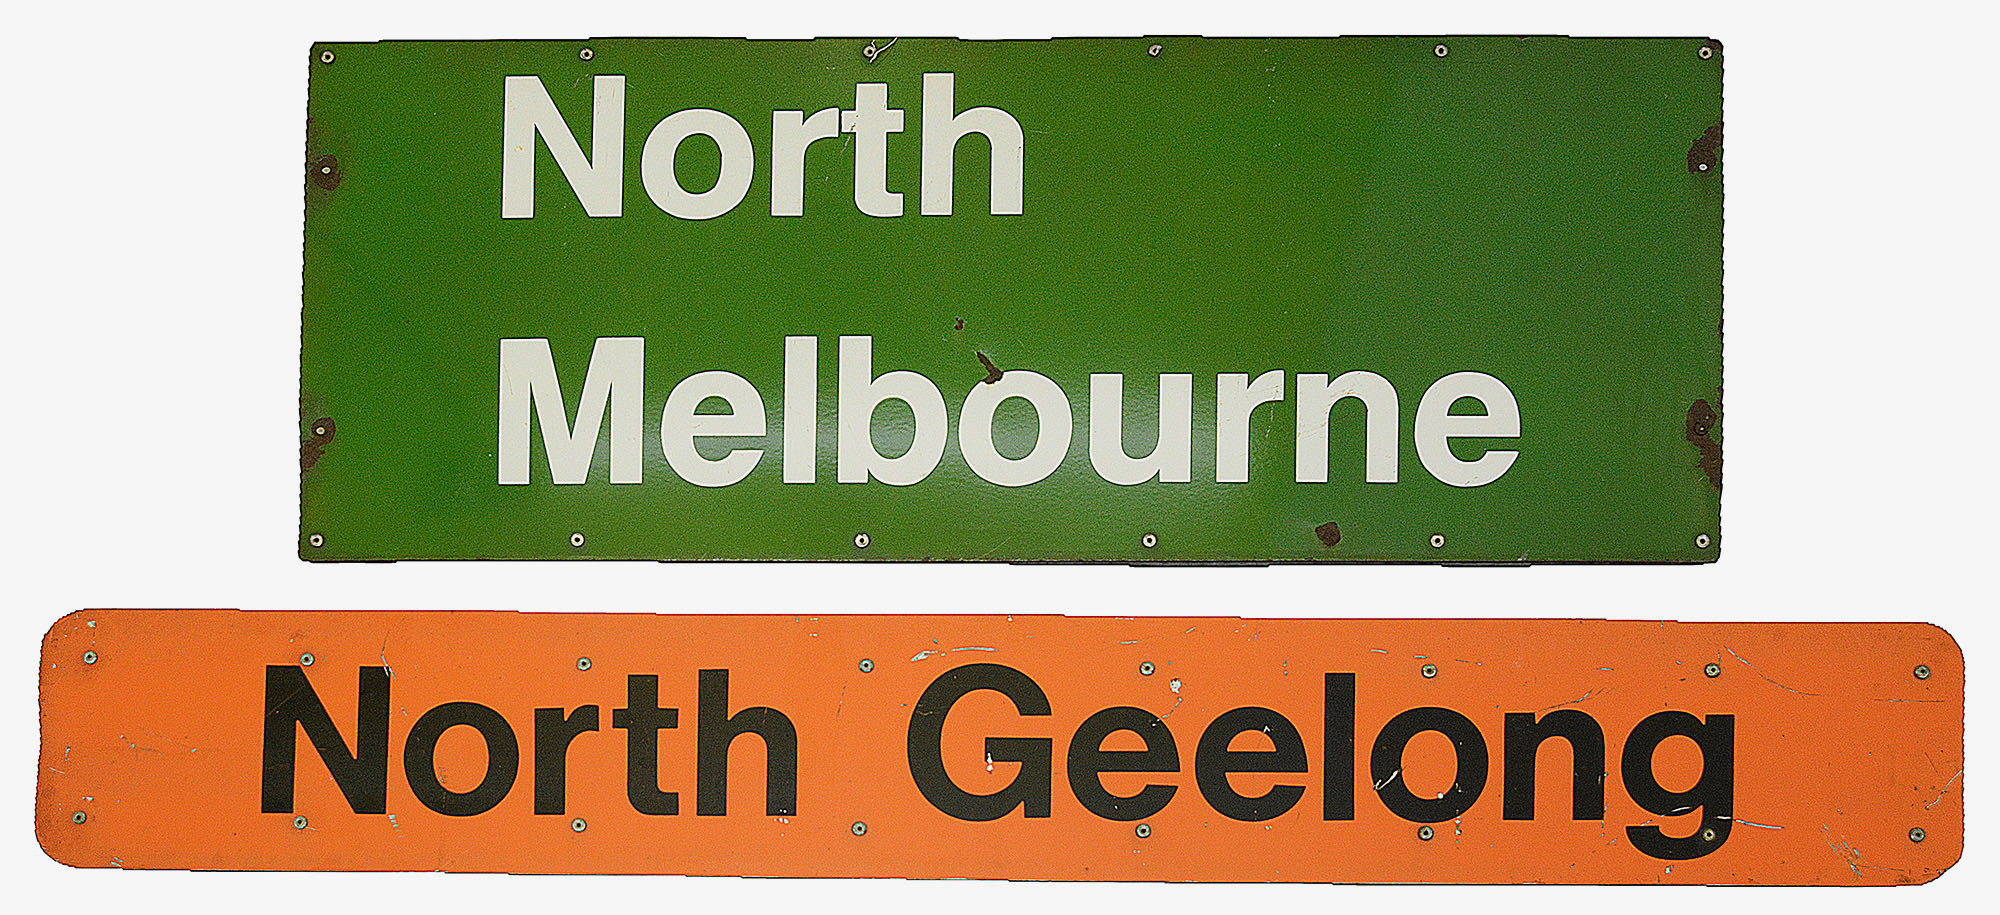 Two Australian enamel railway signs for North Melbourne and North Geelong